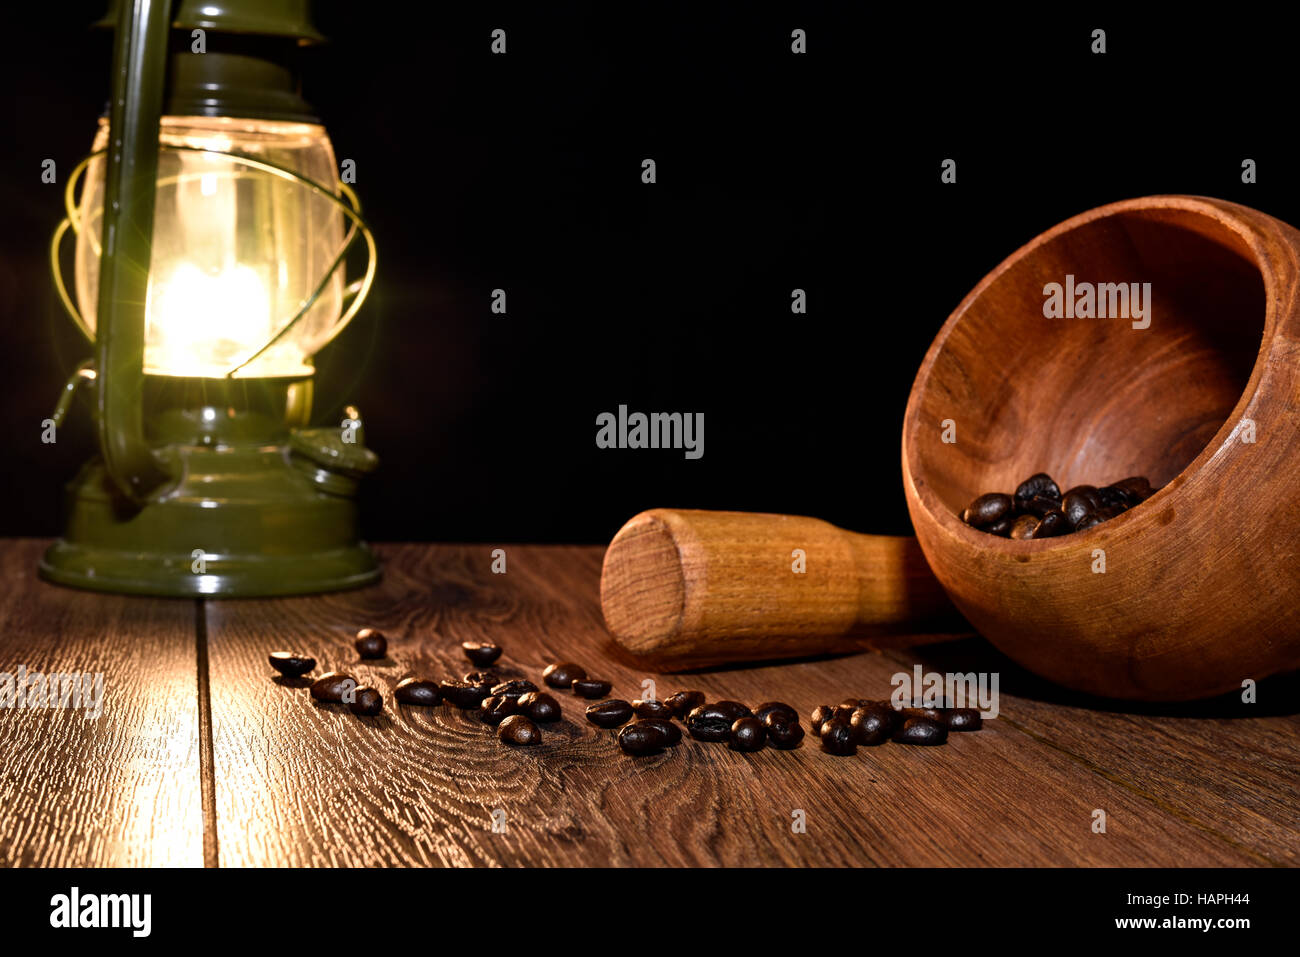 Grains of roasted coffee, kerosene lamp and mortar on the table - Stock Image